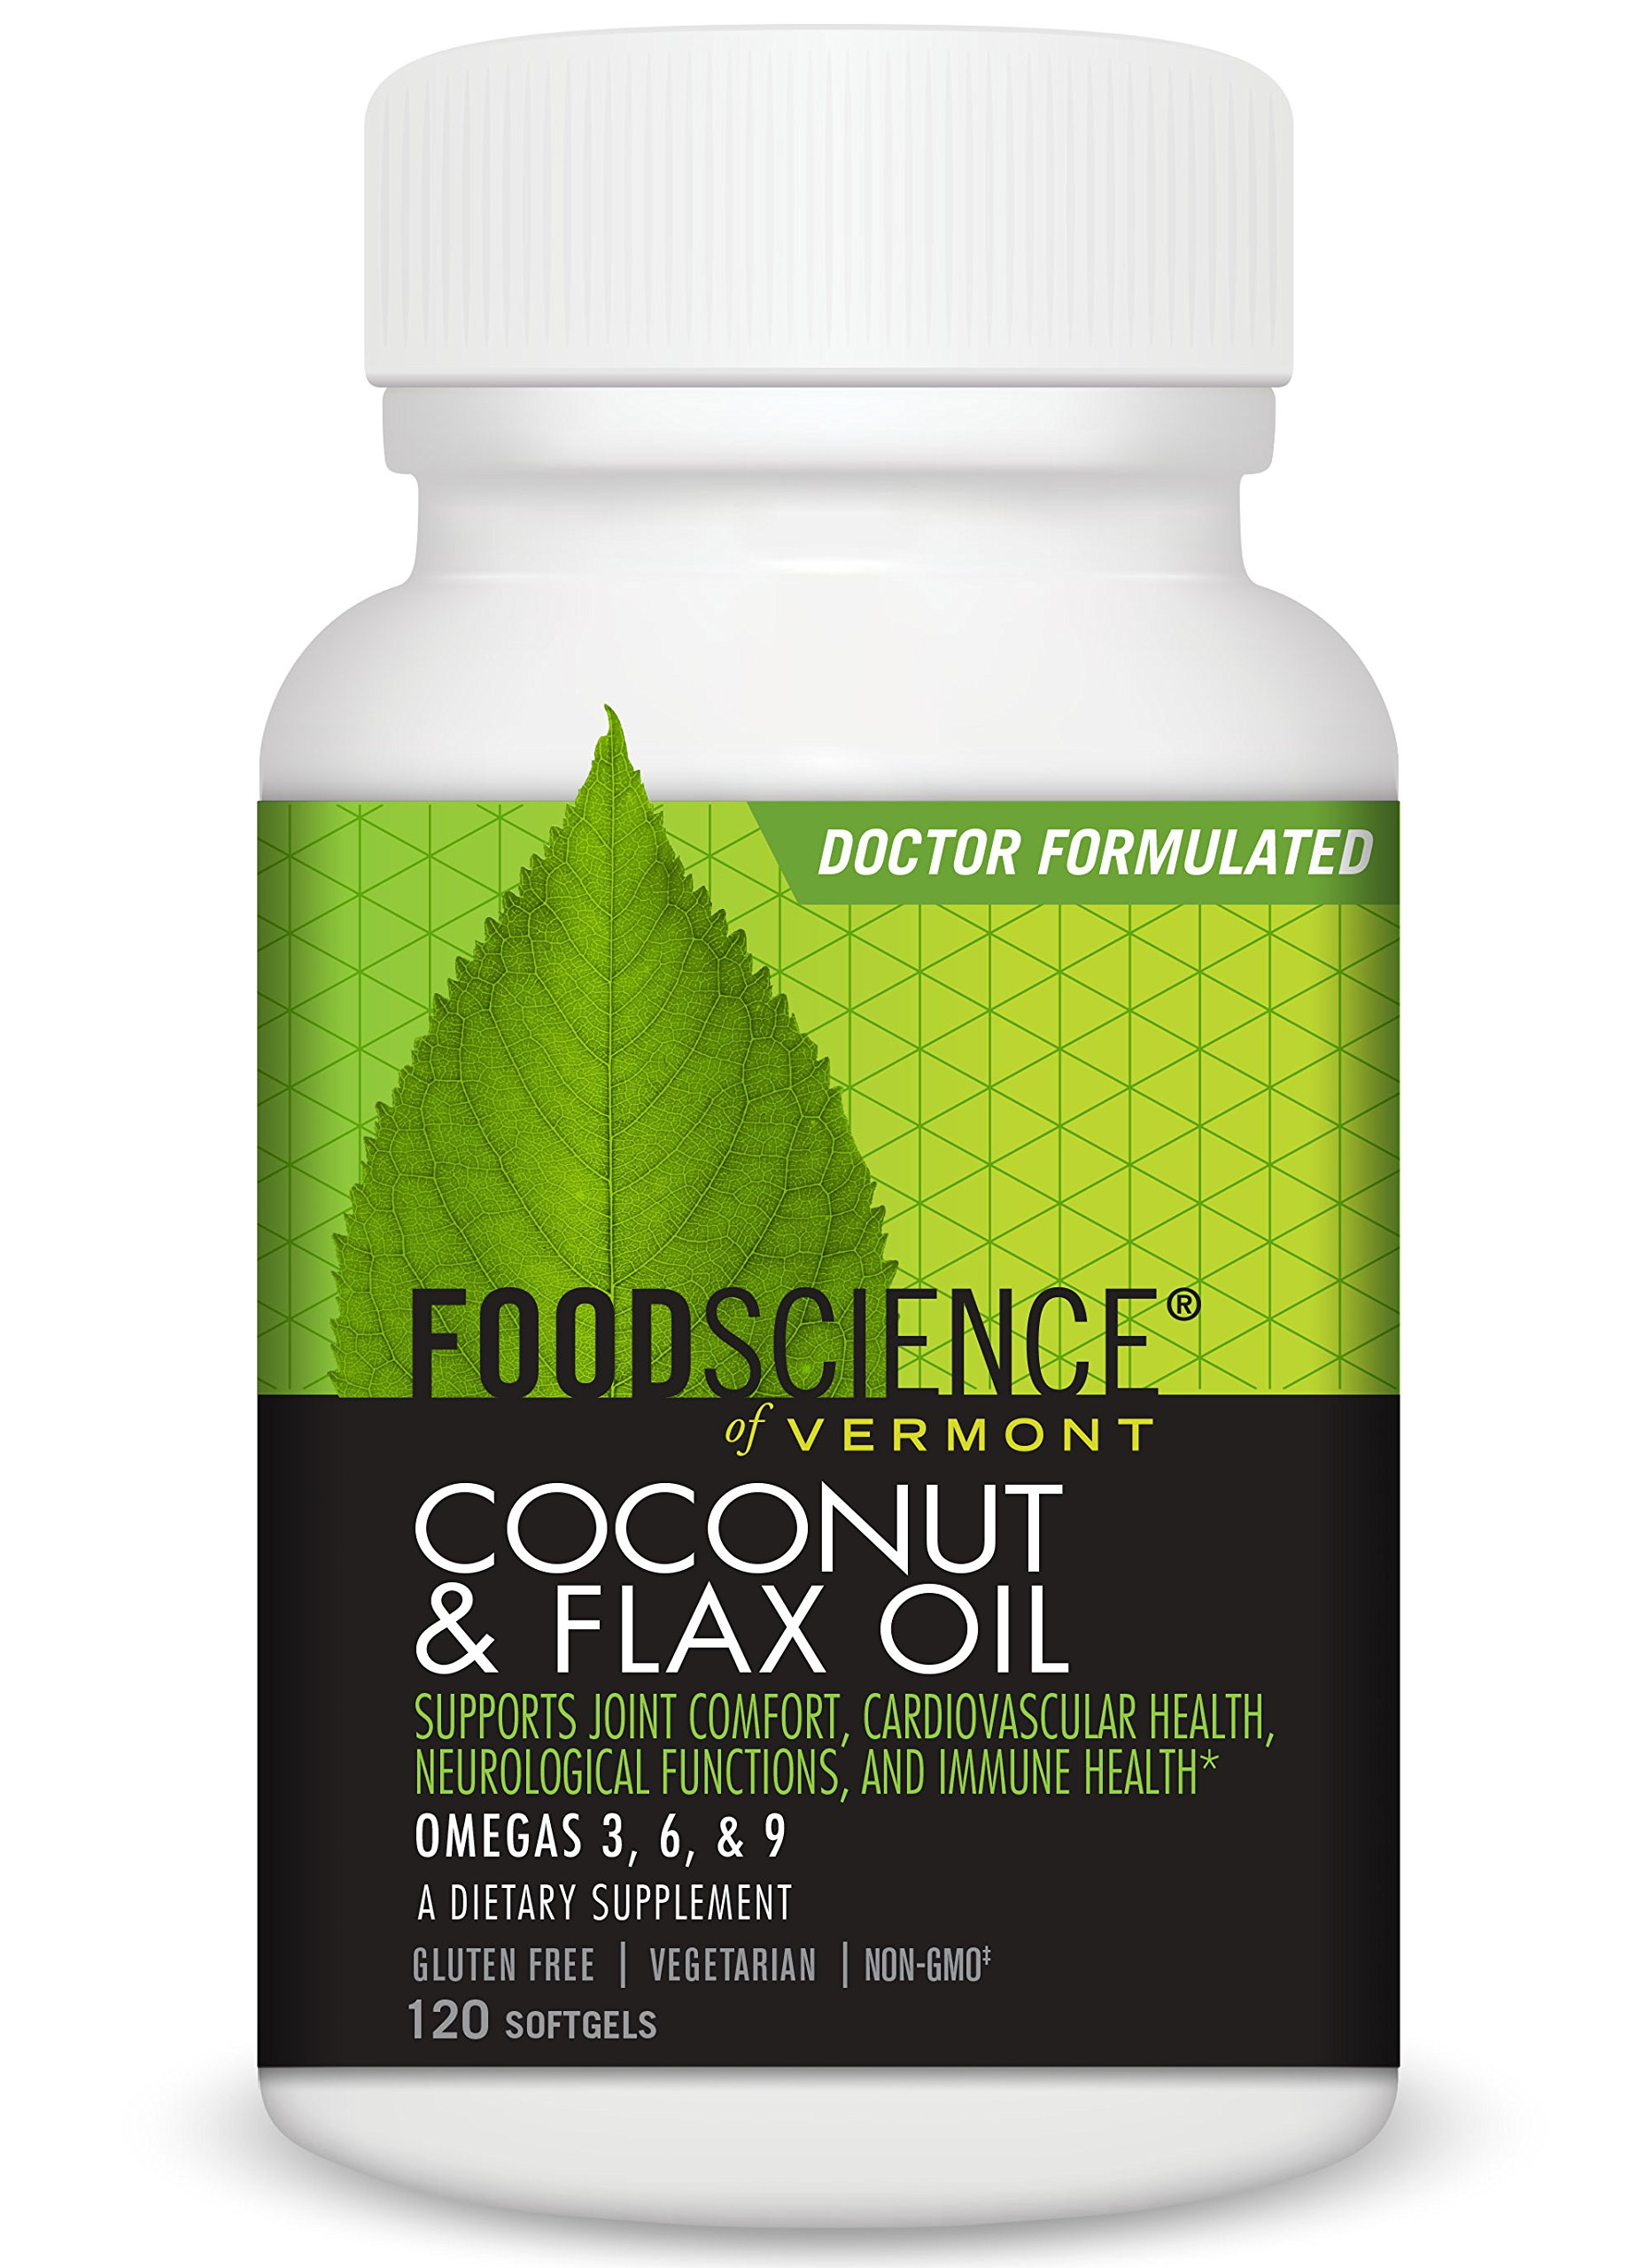 Food Science of Vermont Coconut and Flax Oil Supplement, 120 Count